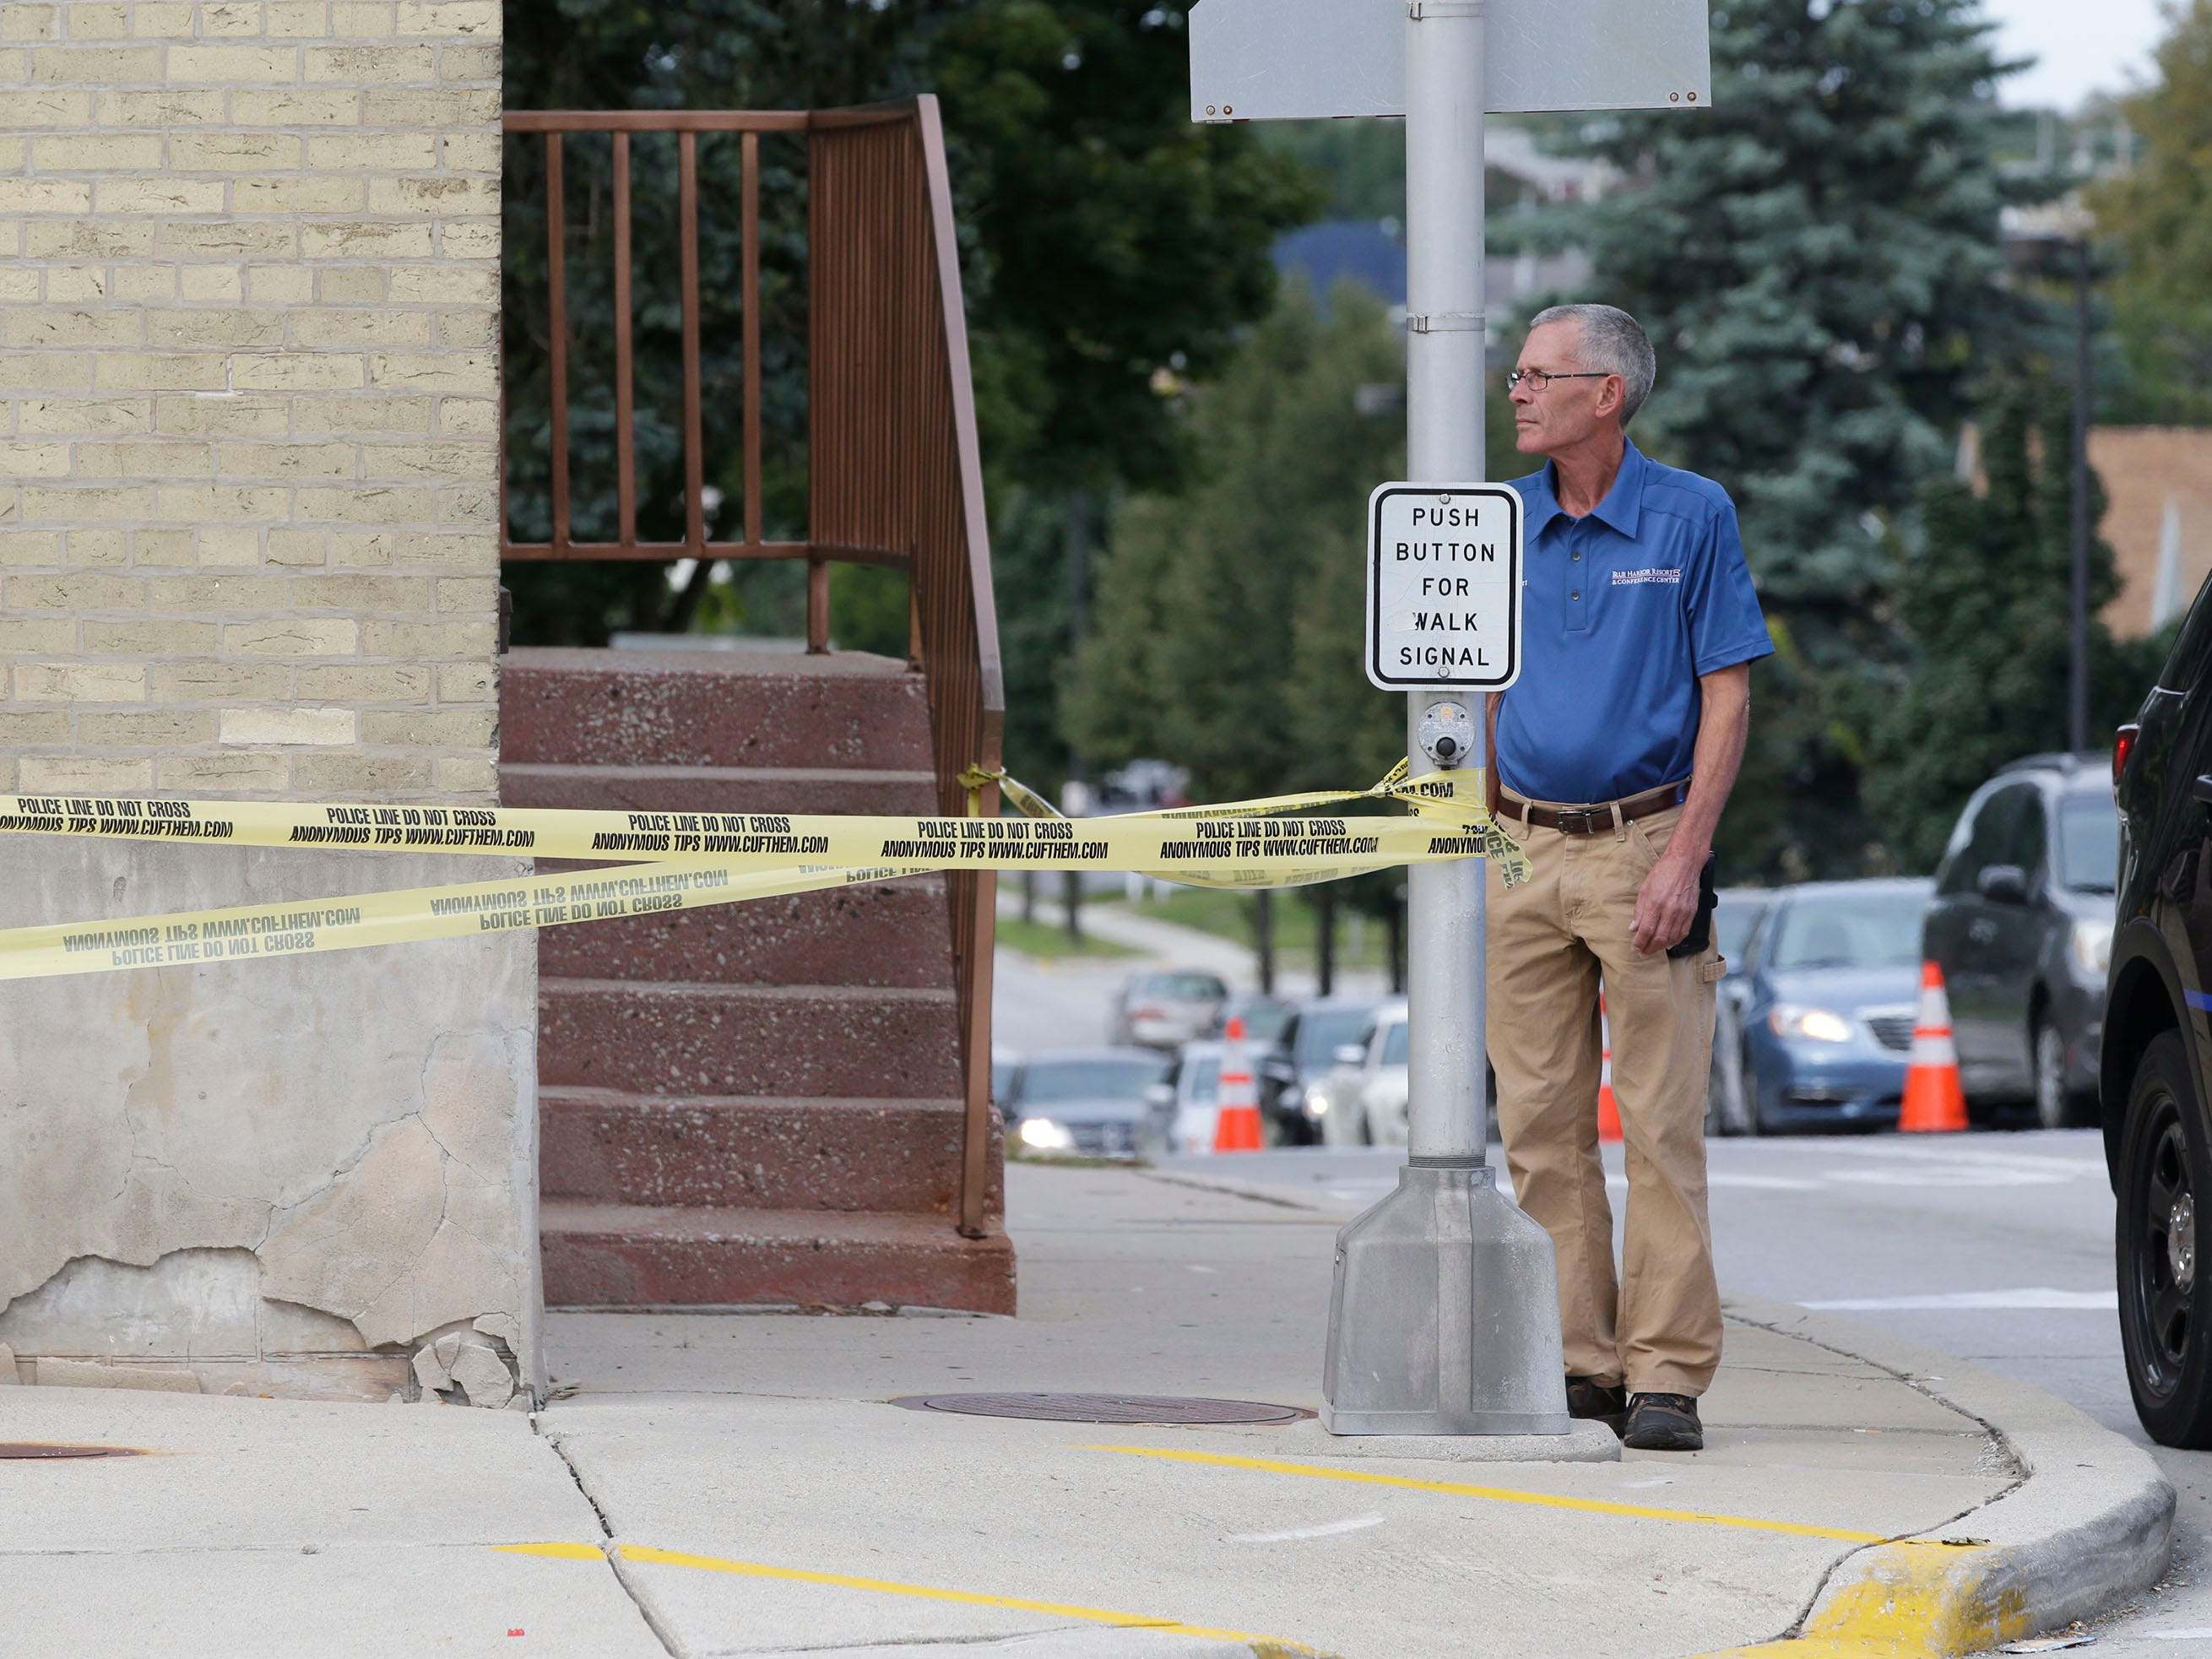 A bystander looks over the scene of a 2-car crash on Pennsylvania Avenue between 14th and 15th streets, Tuesday, September 18, 2018, in Sheboygan, Wis. A third parked car was also struck. Two people died as a result of the crash.